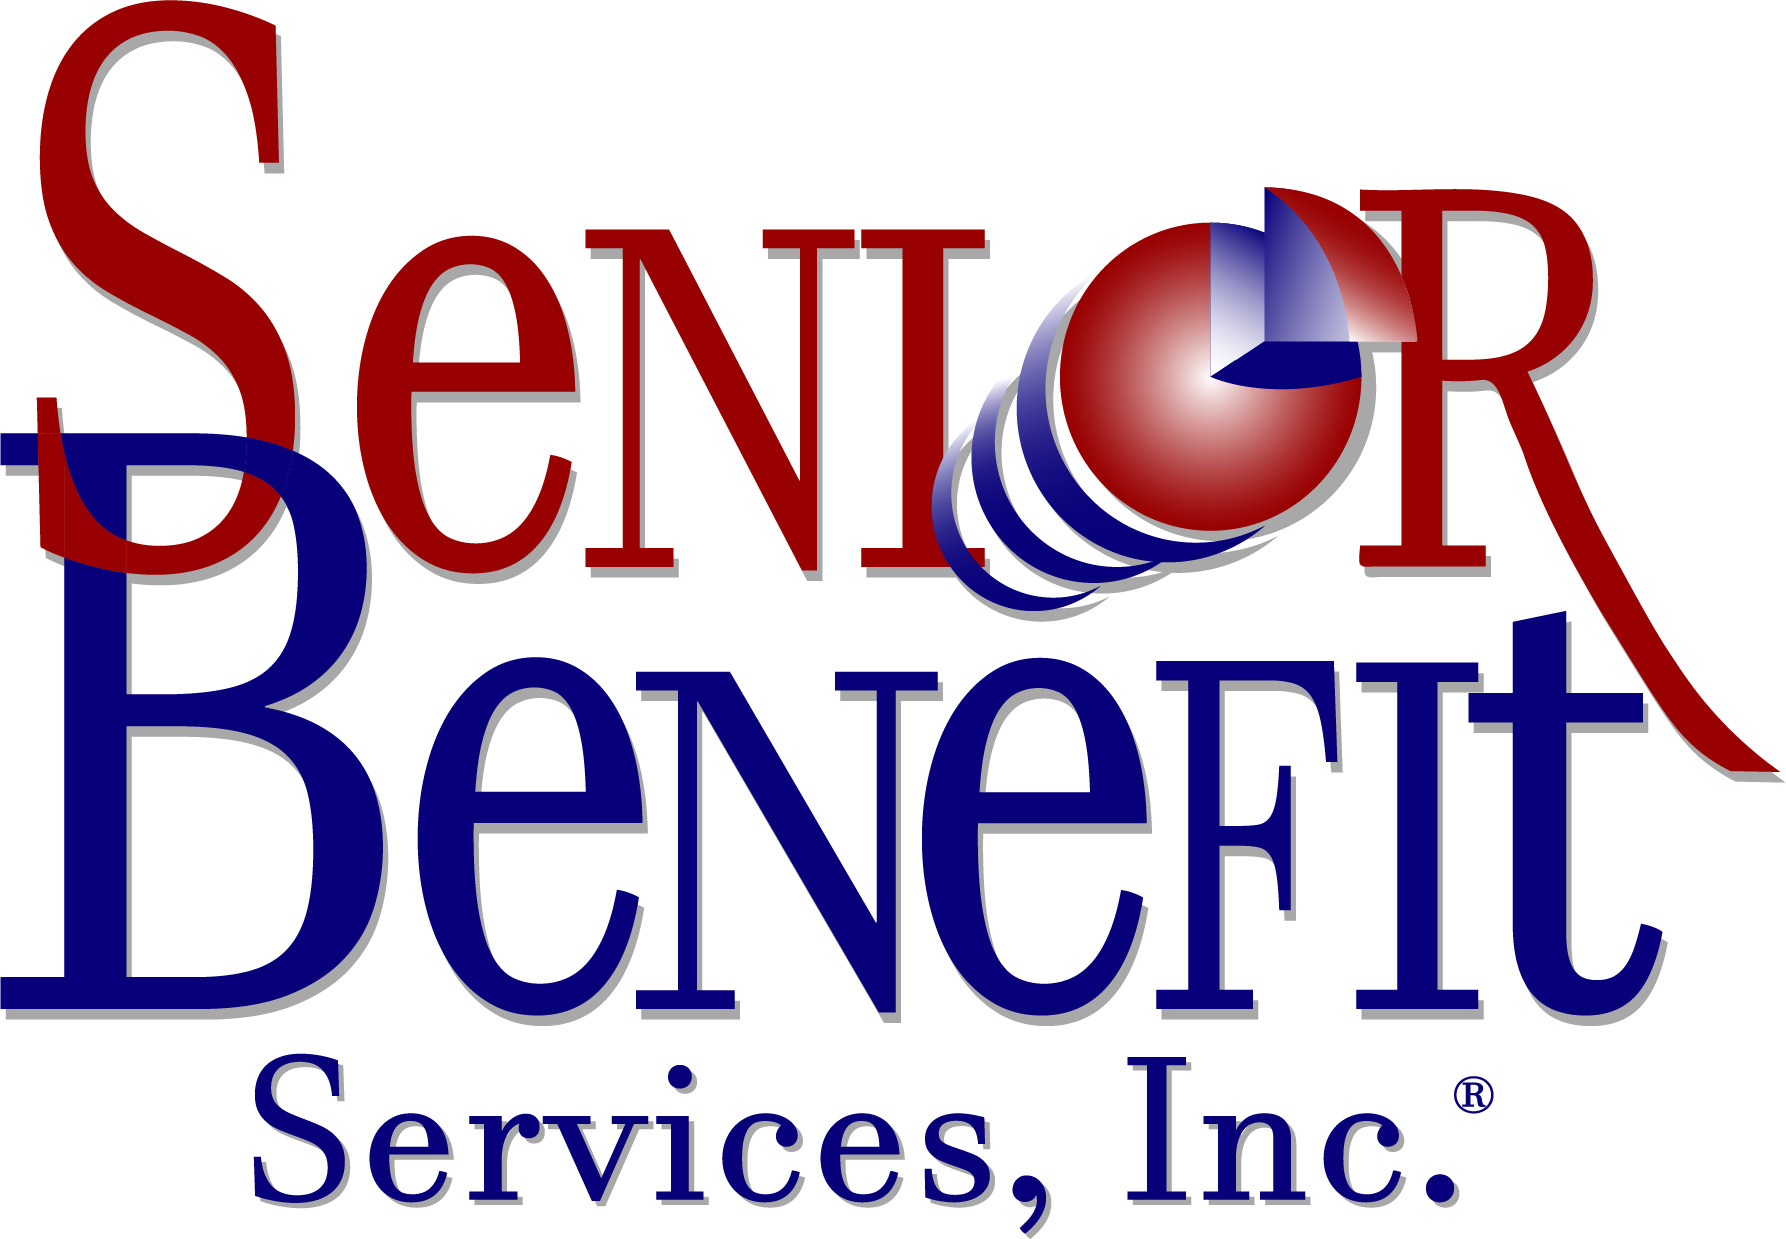 Senior Benefit Services, Inc